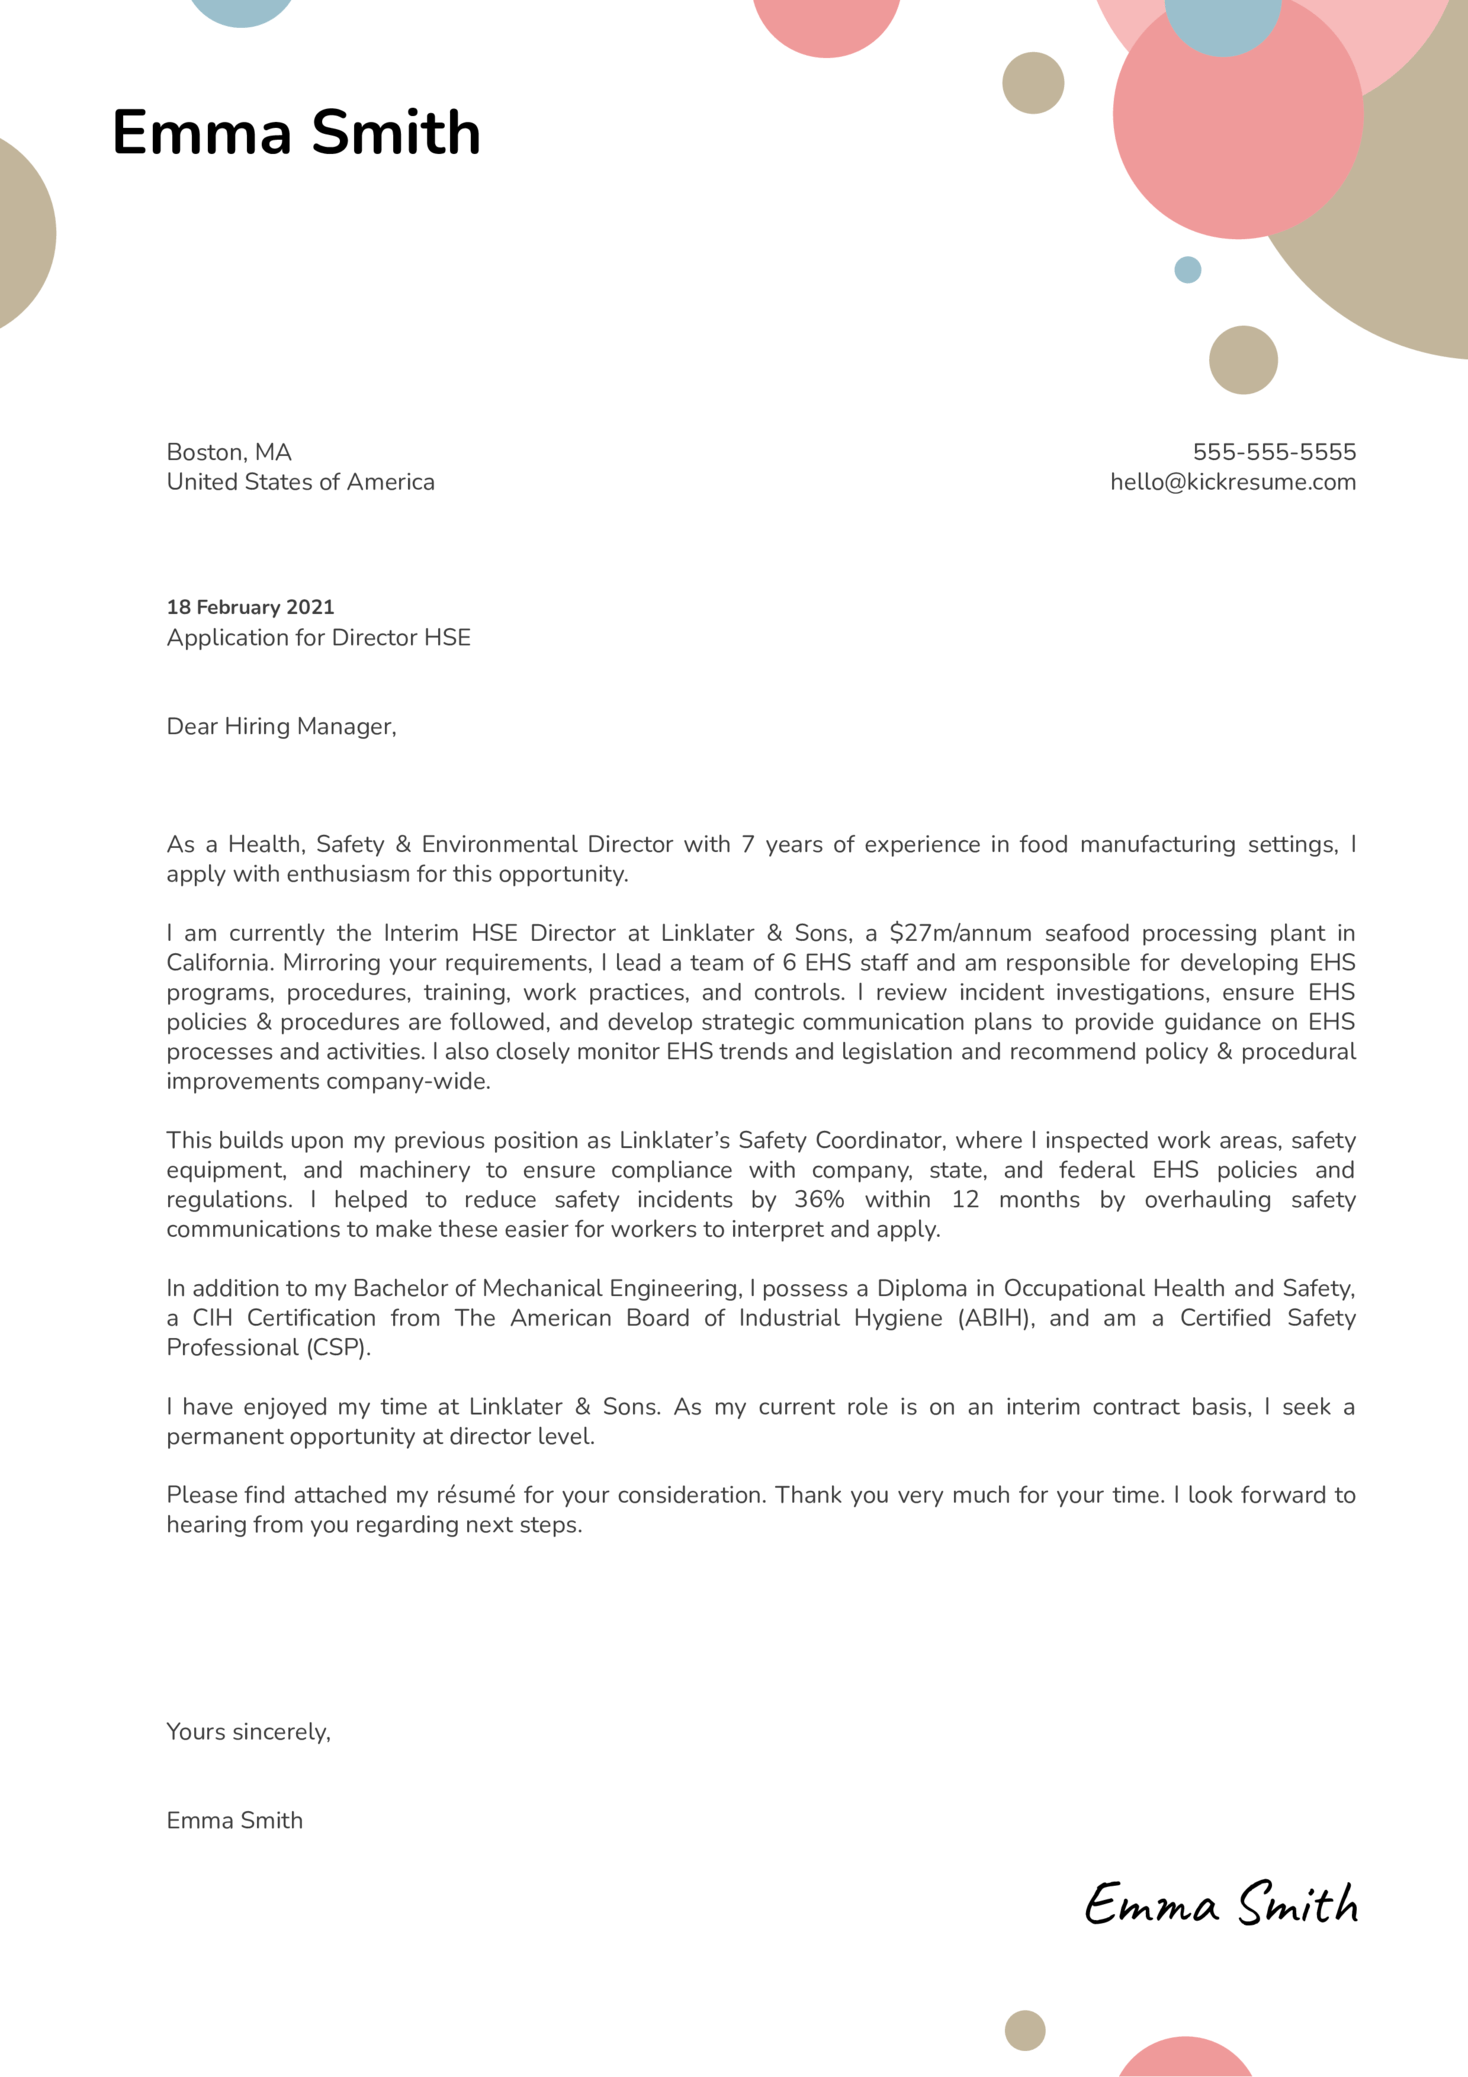 Director HSE Cover Letter Template